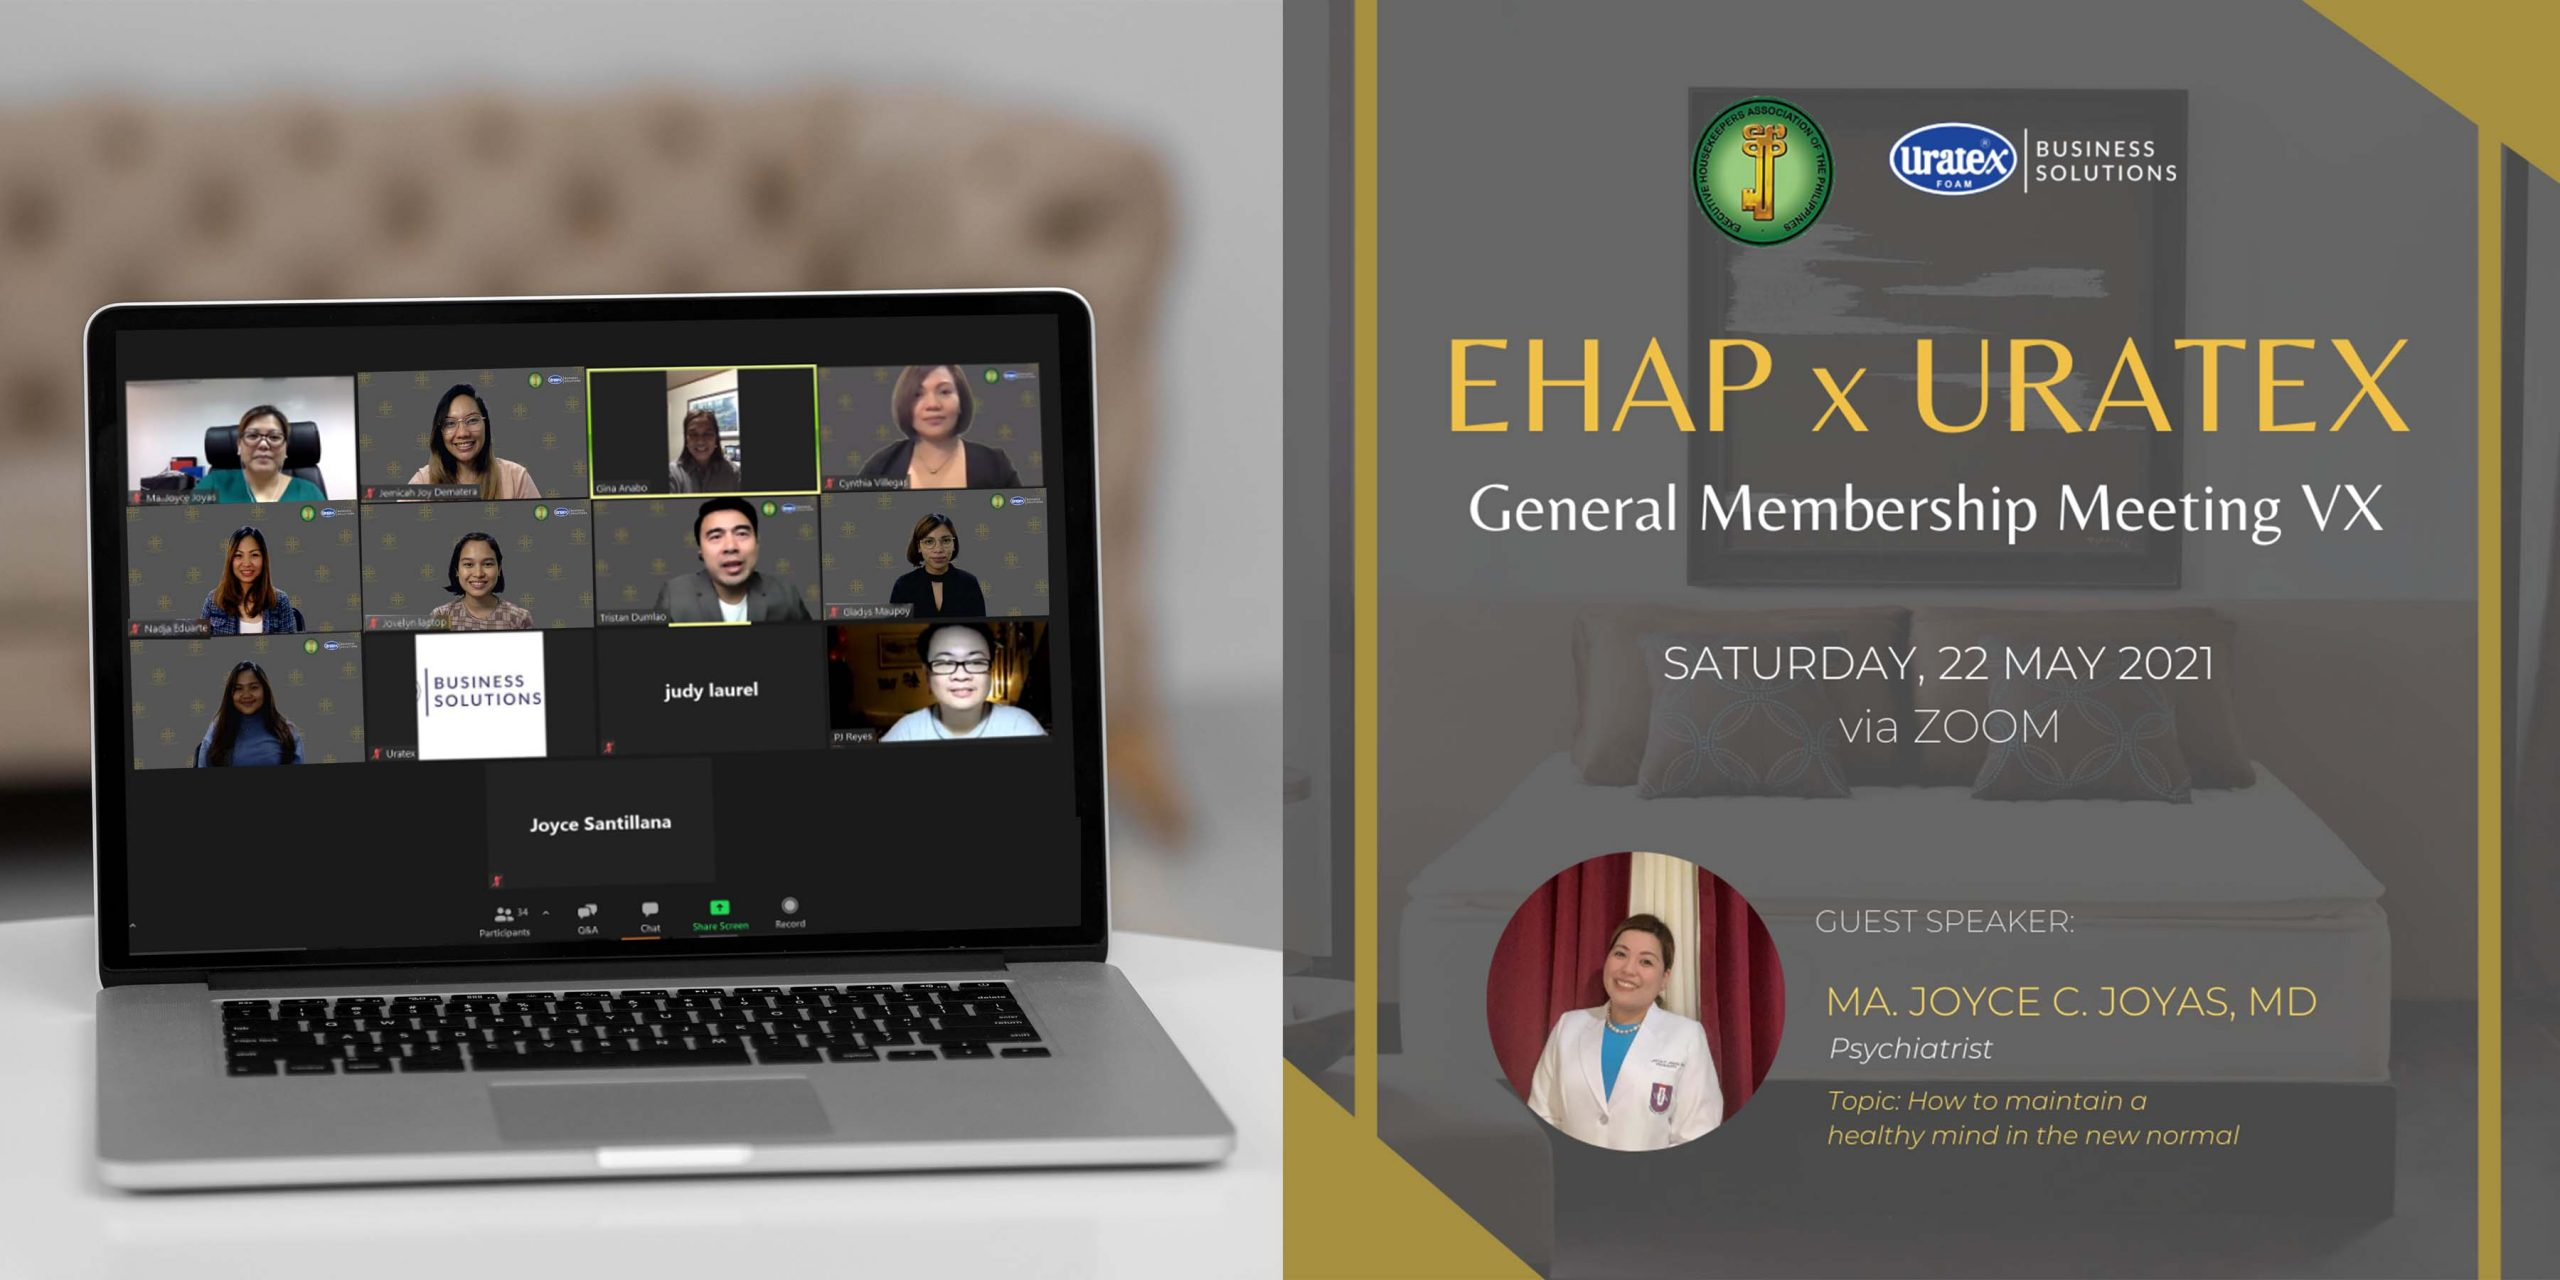 EHAP and Uratex for Business Joined Together for the Virtual General Membership Meeting